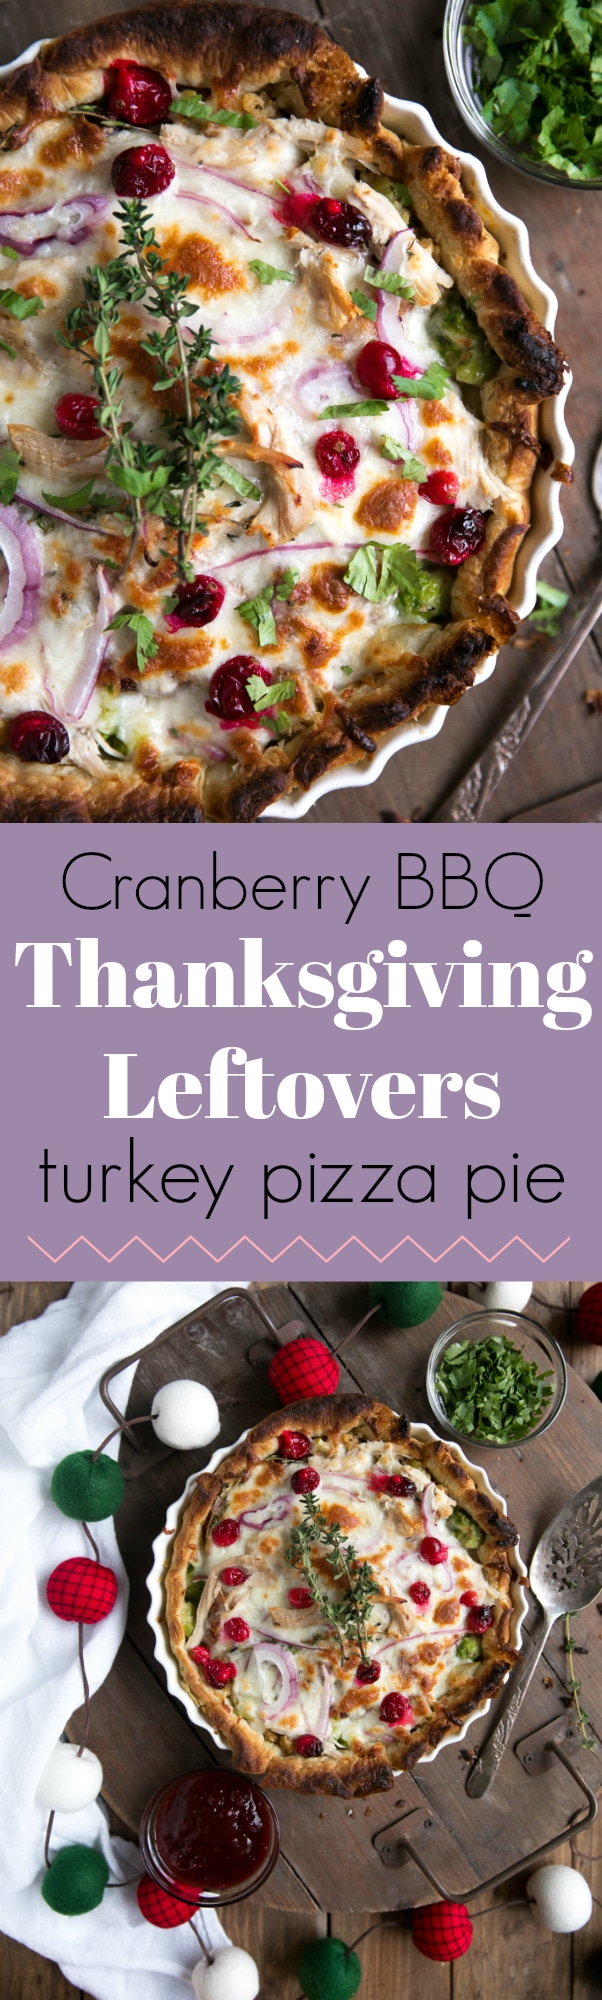 Cranberry BBQ Leftover Turkey Pizza Pie. When Thanksgiving leftovers, bbq pizza, and pie make a baby you get this (better than Thanksgiving dinner) Cranberry BBQ Thanksgiving Leftovers Turkey Pizza Pie via @theforkedspoon #puffpastry #leftovers #pizza #thanksgivingleftovers #comfortfood For this and more recipes visit, theforkedspoon.com